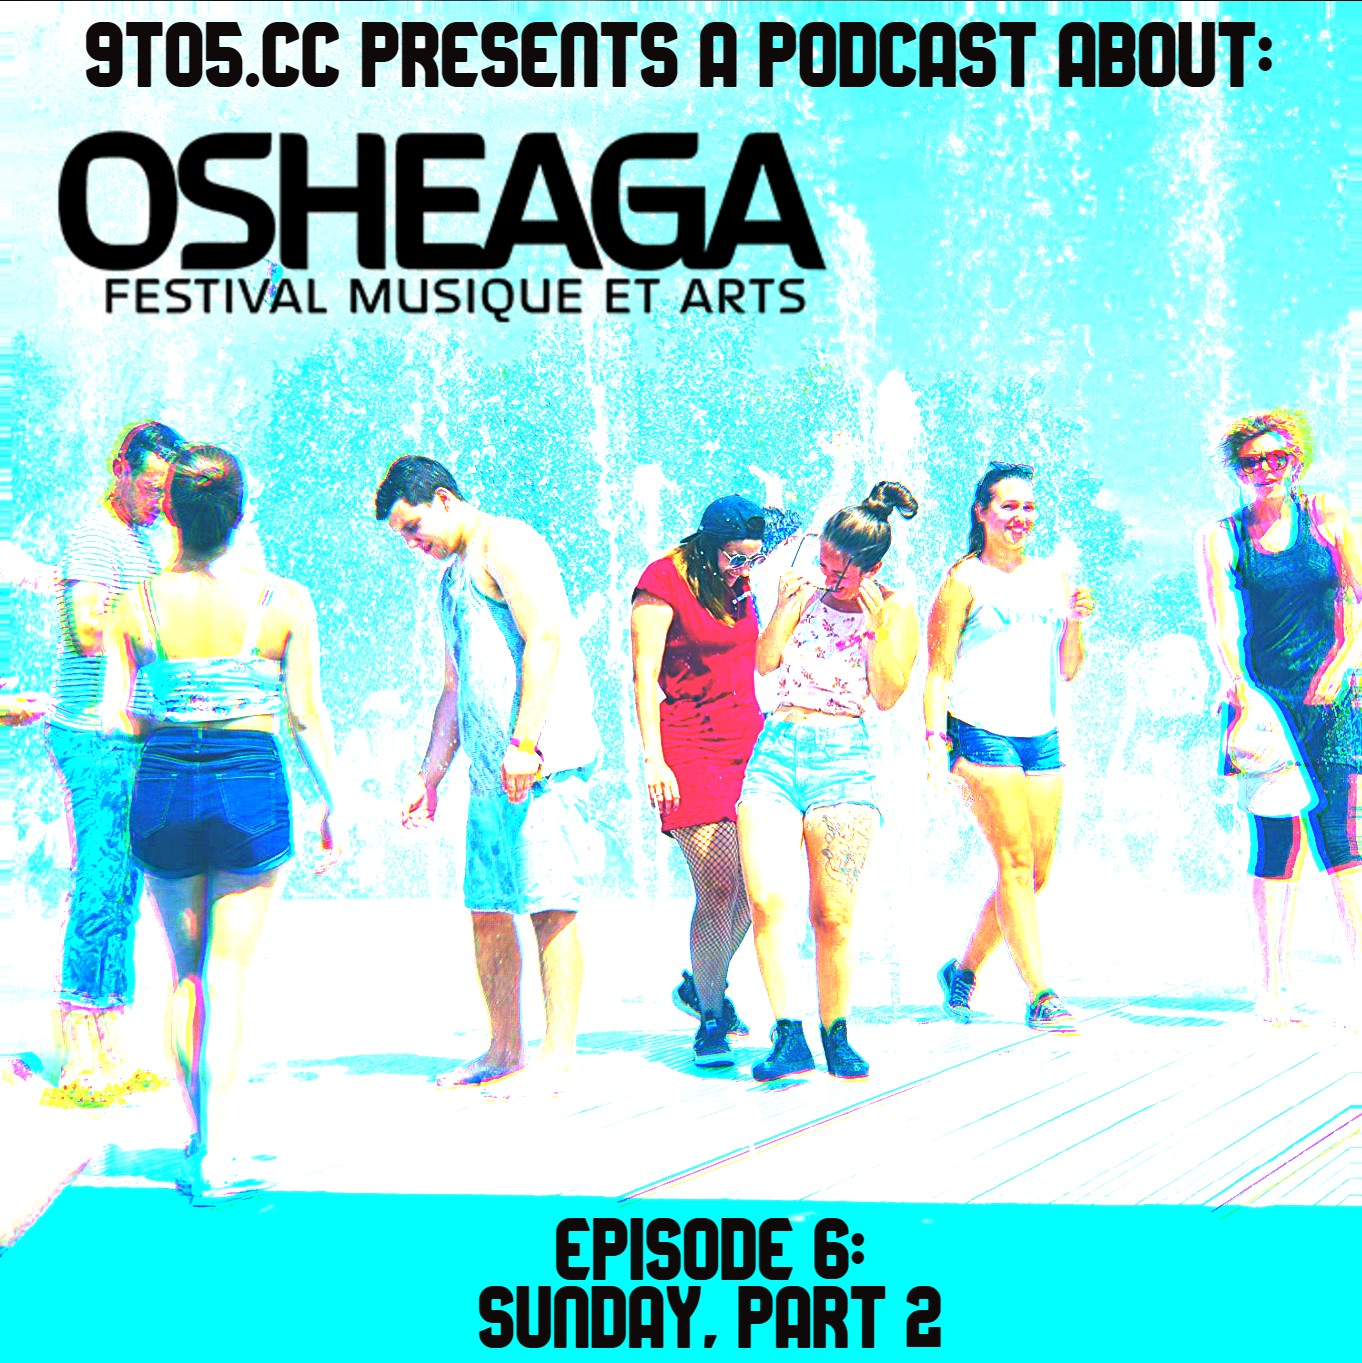 osheaga 2019 podcast